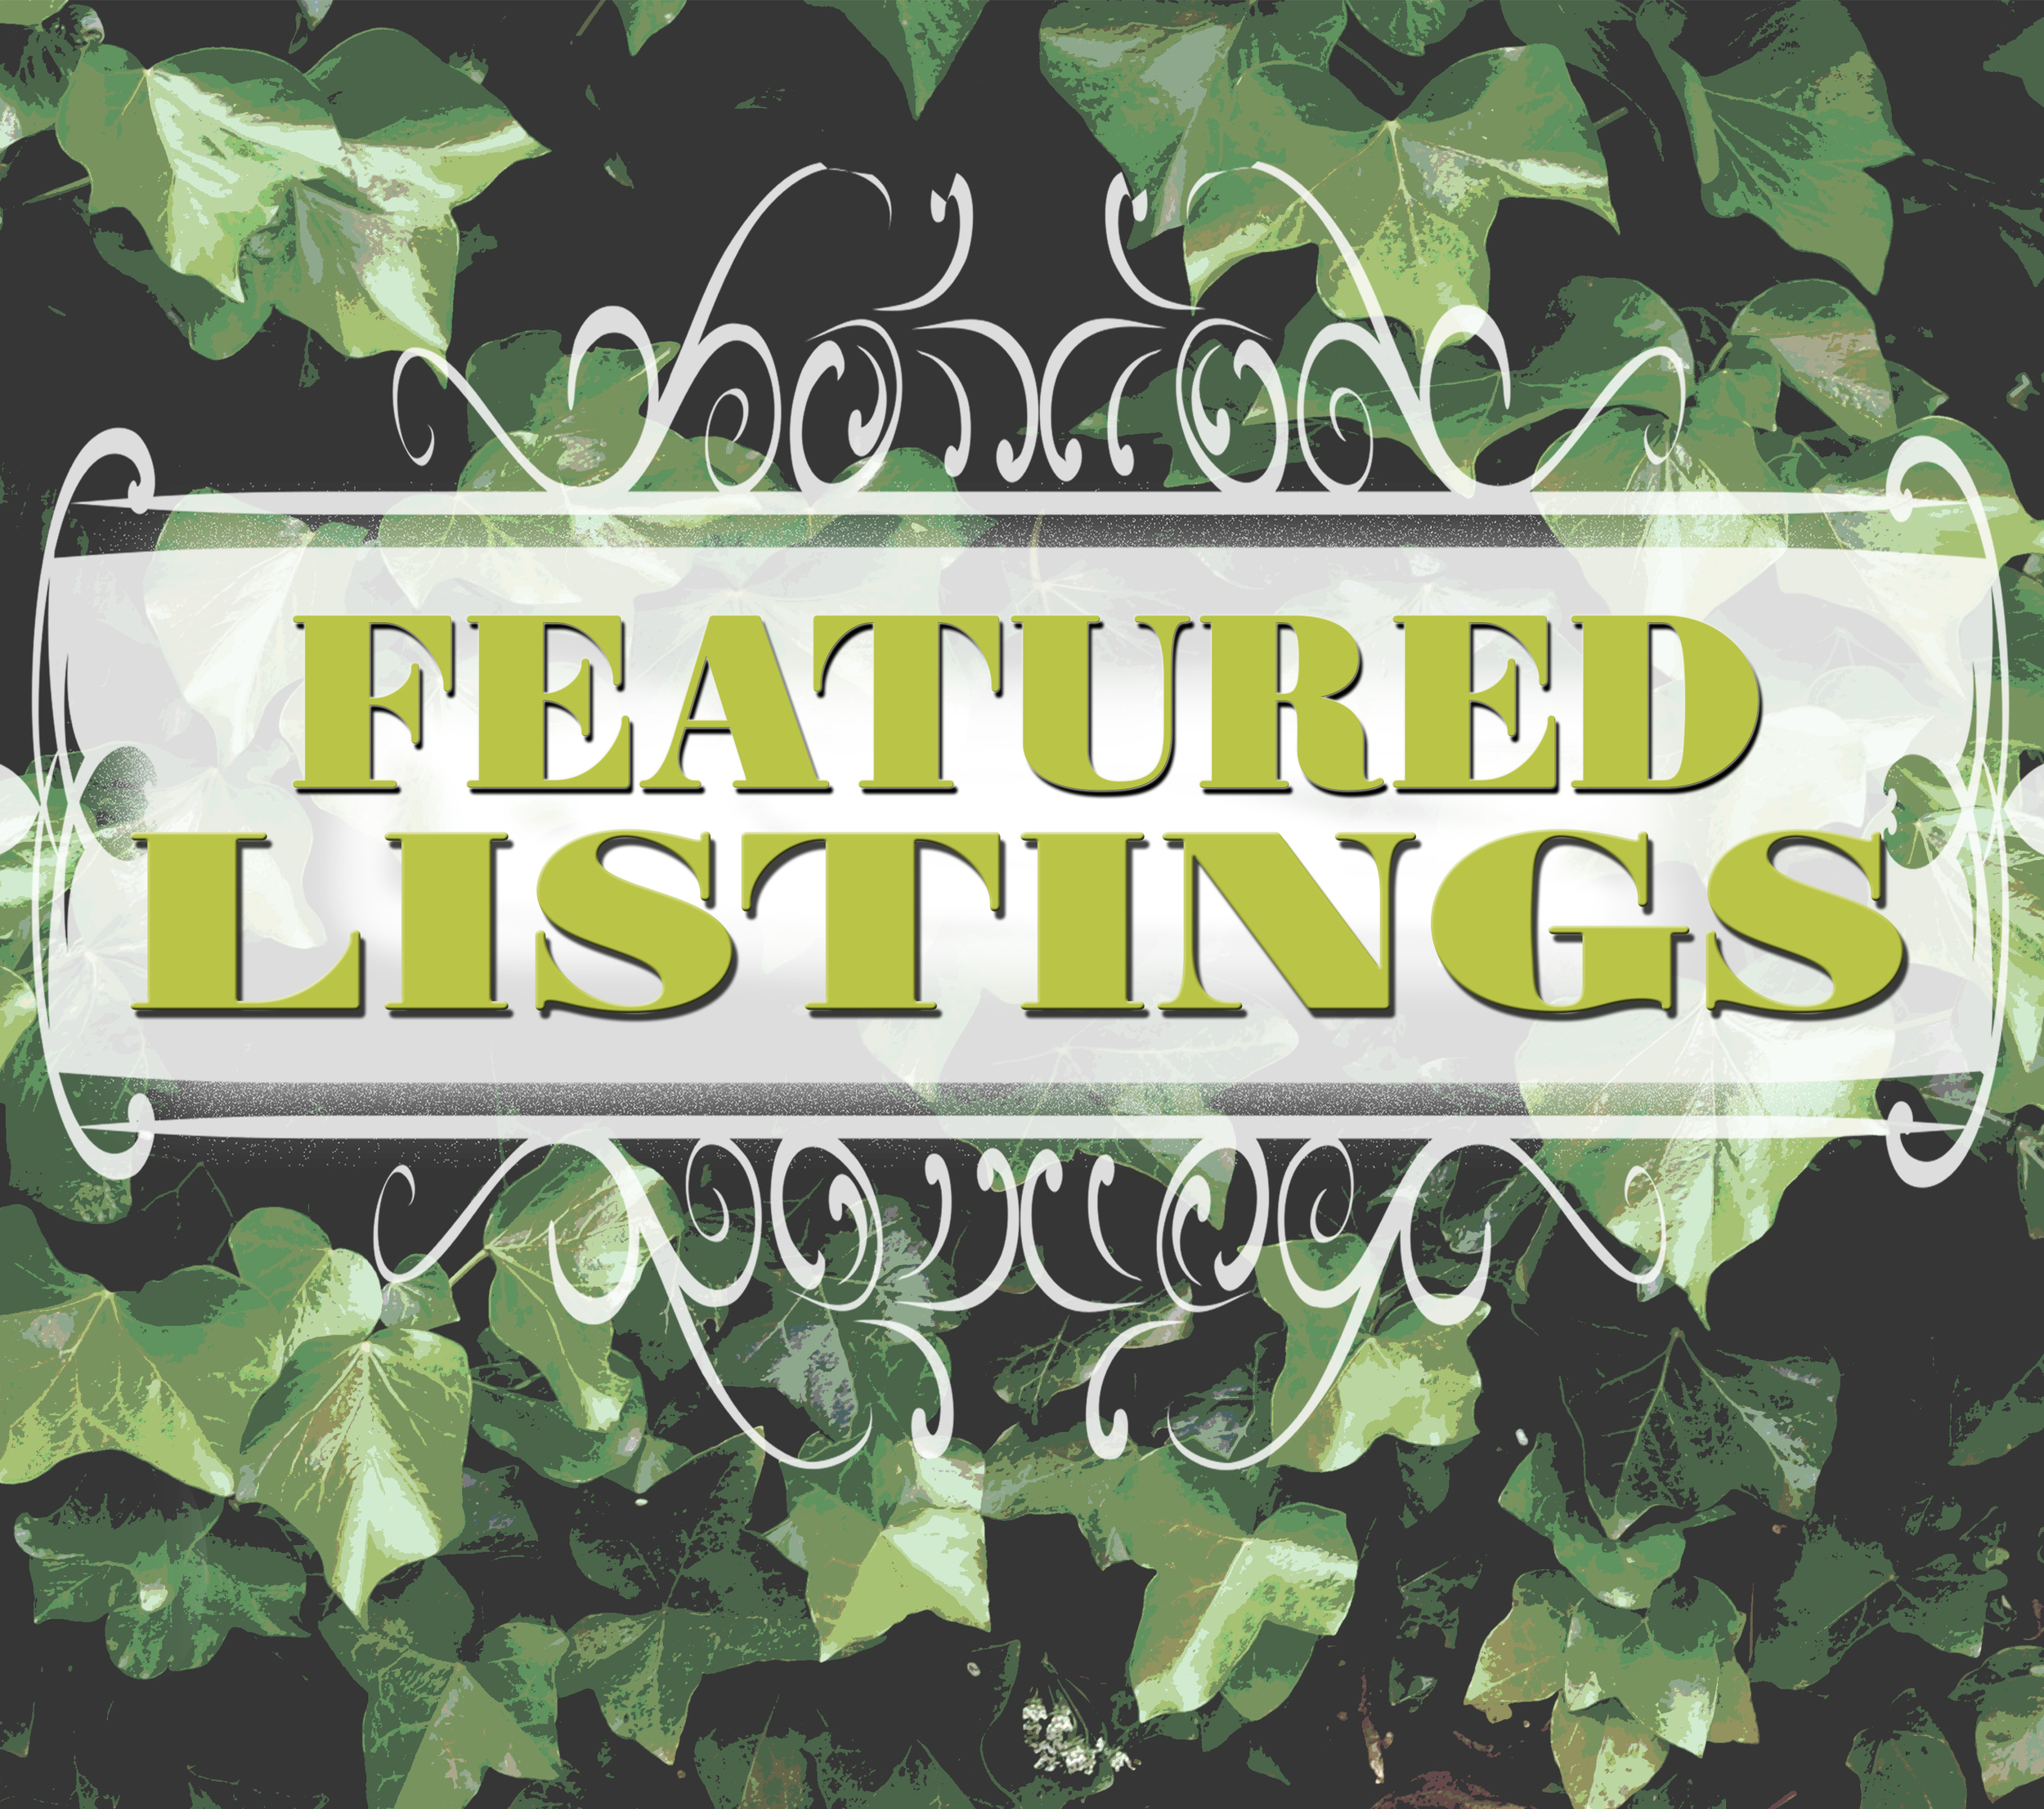 HOMEoklahoma featured listings button